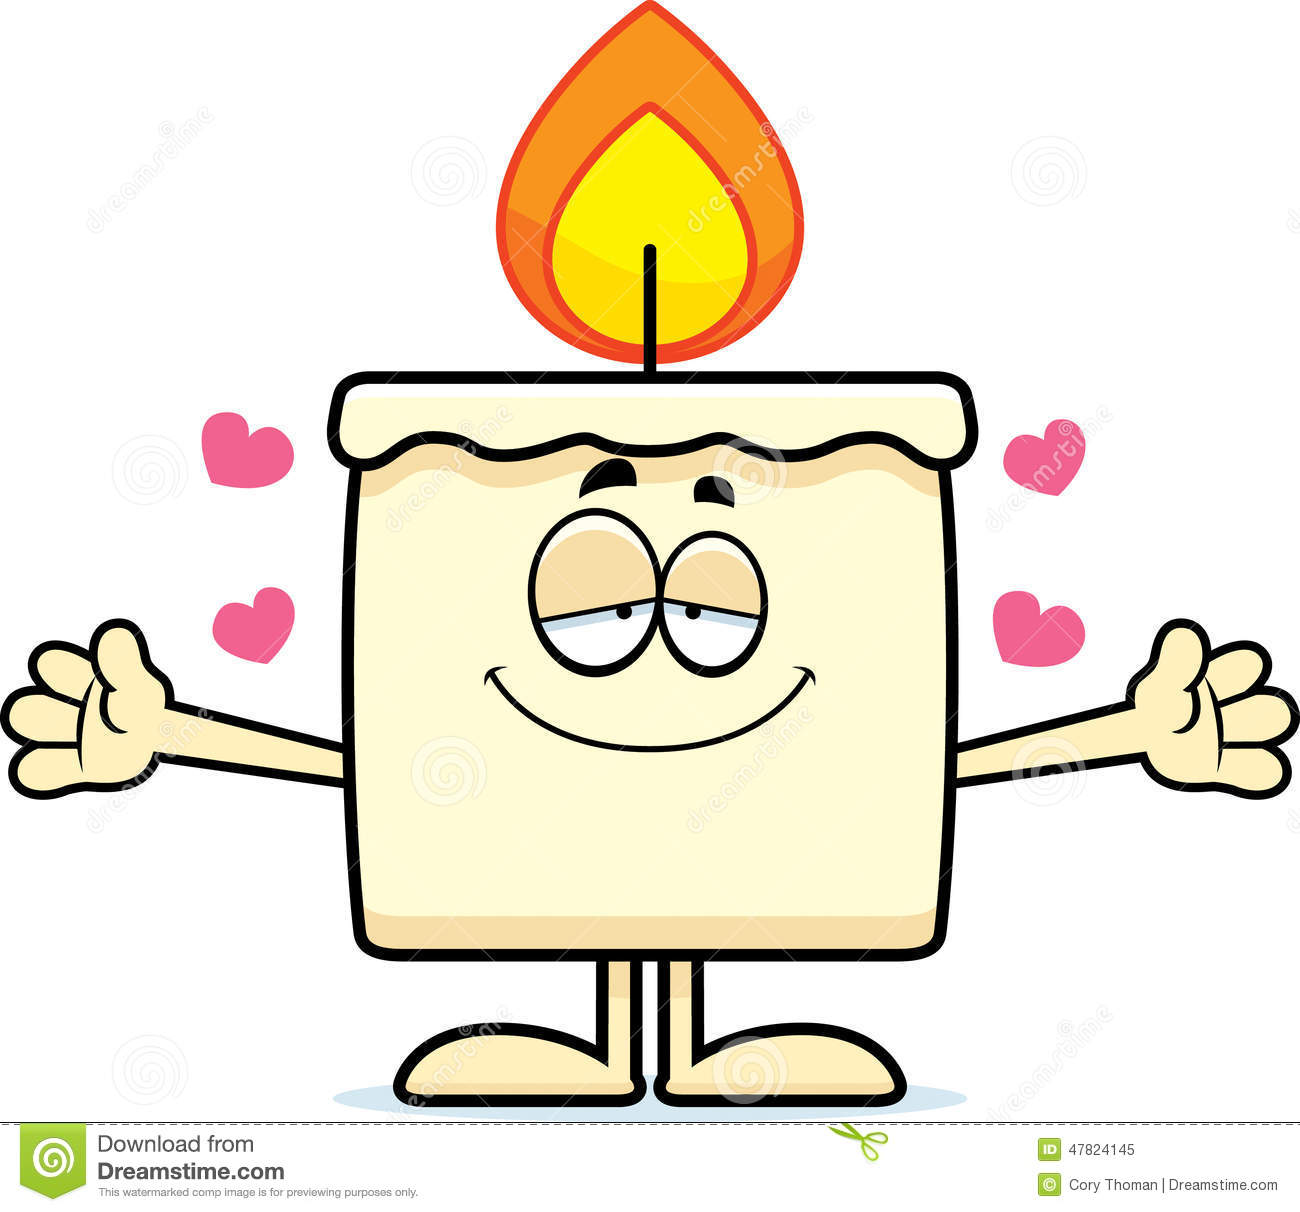 cartoon illustration of a candle ready to give a hug.